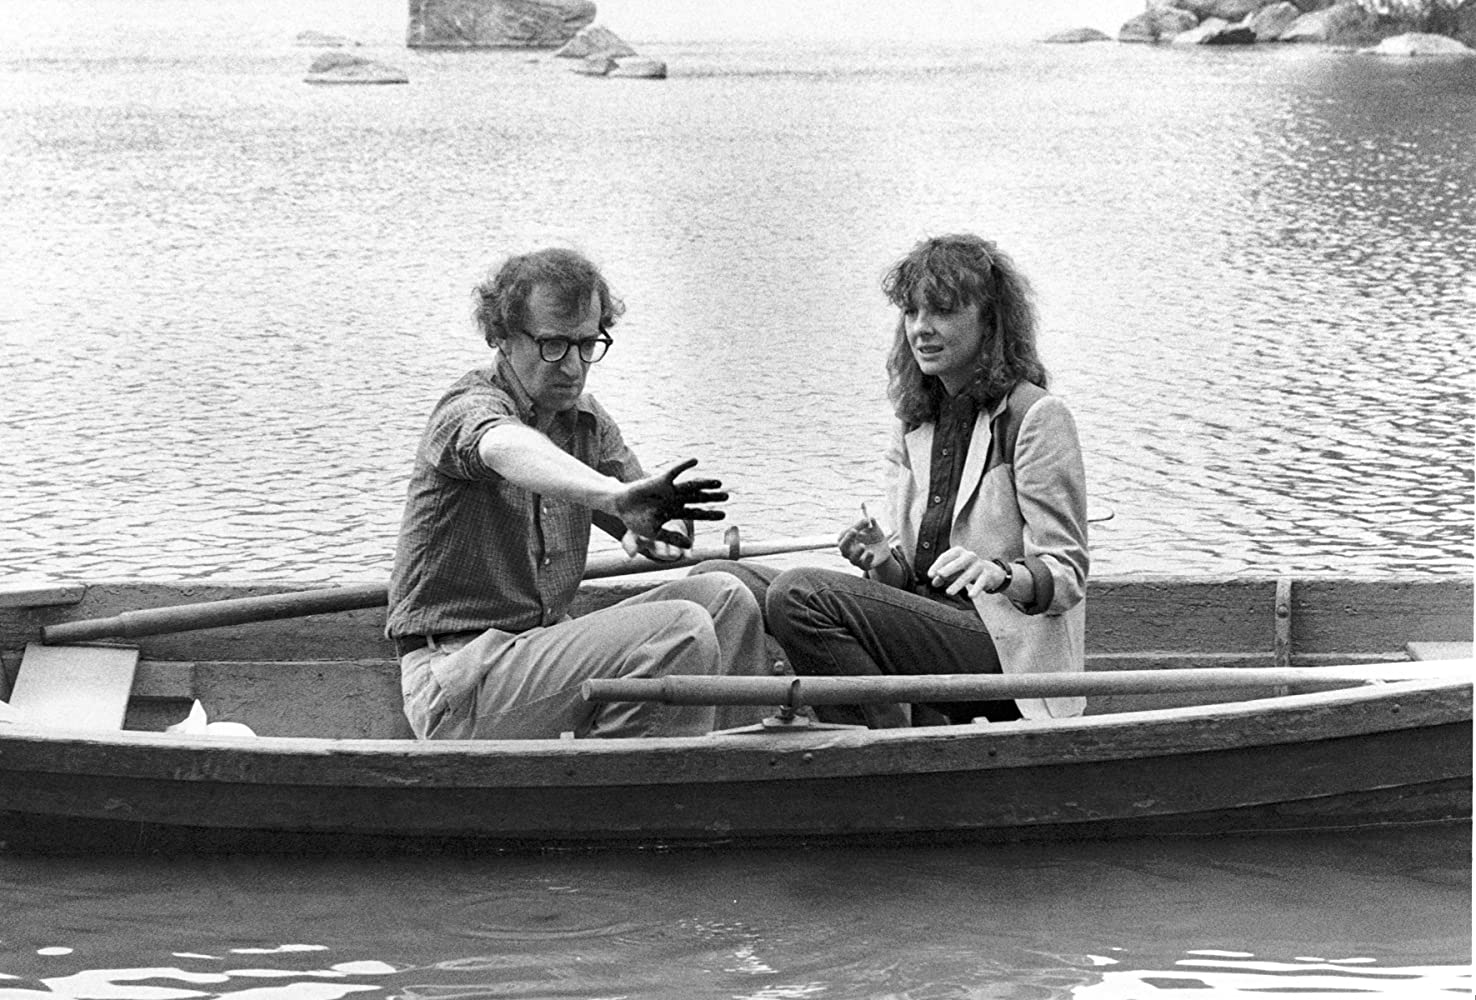 Woody Allen and Diane Keaton in Manhattan (1979)